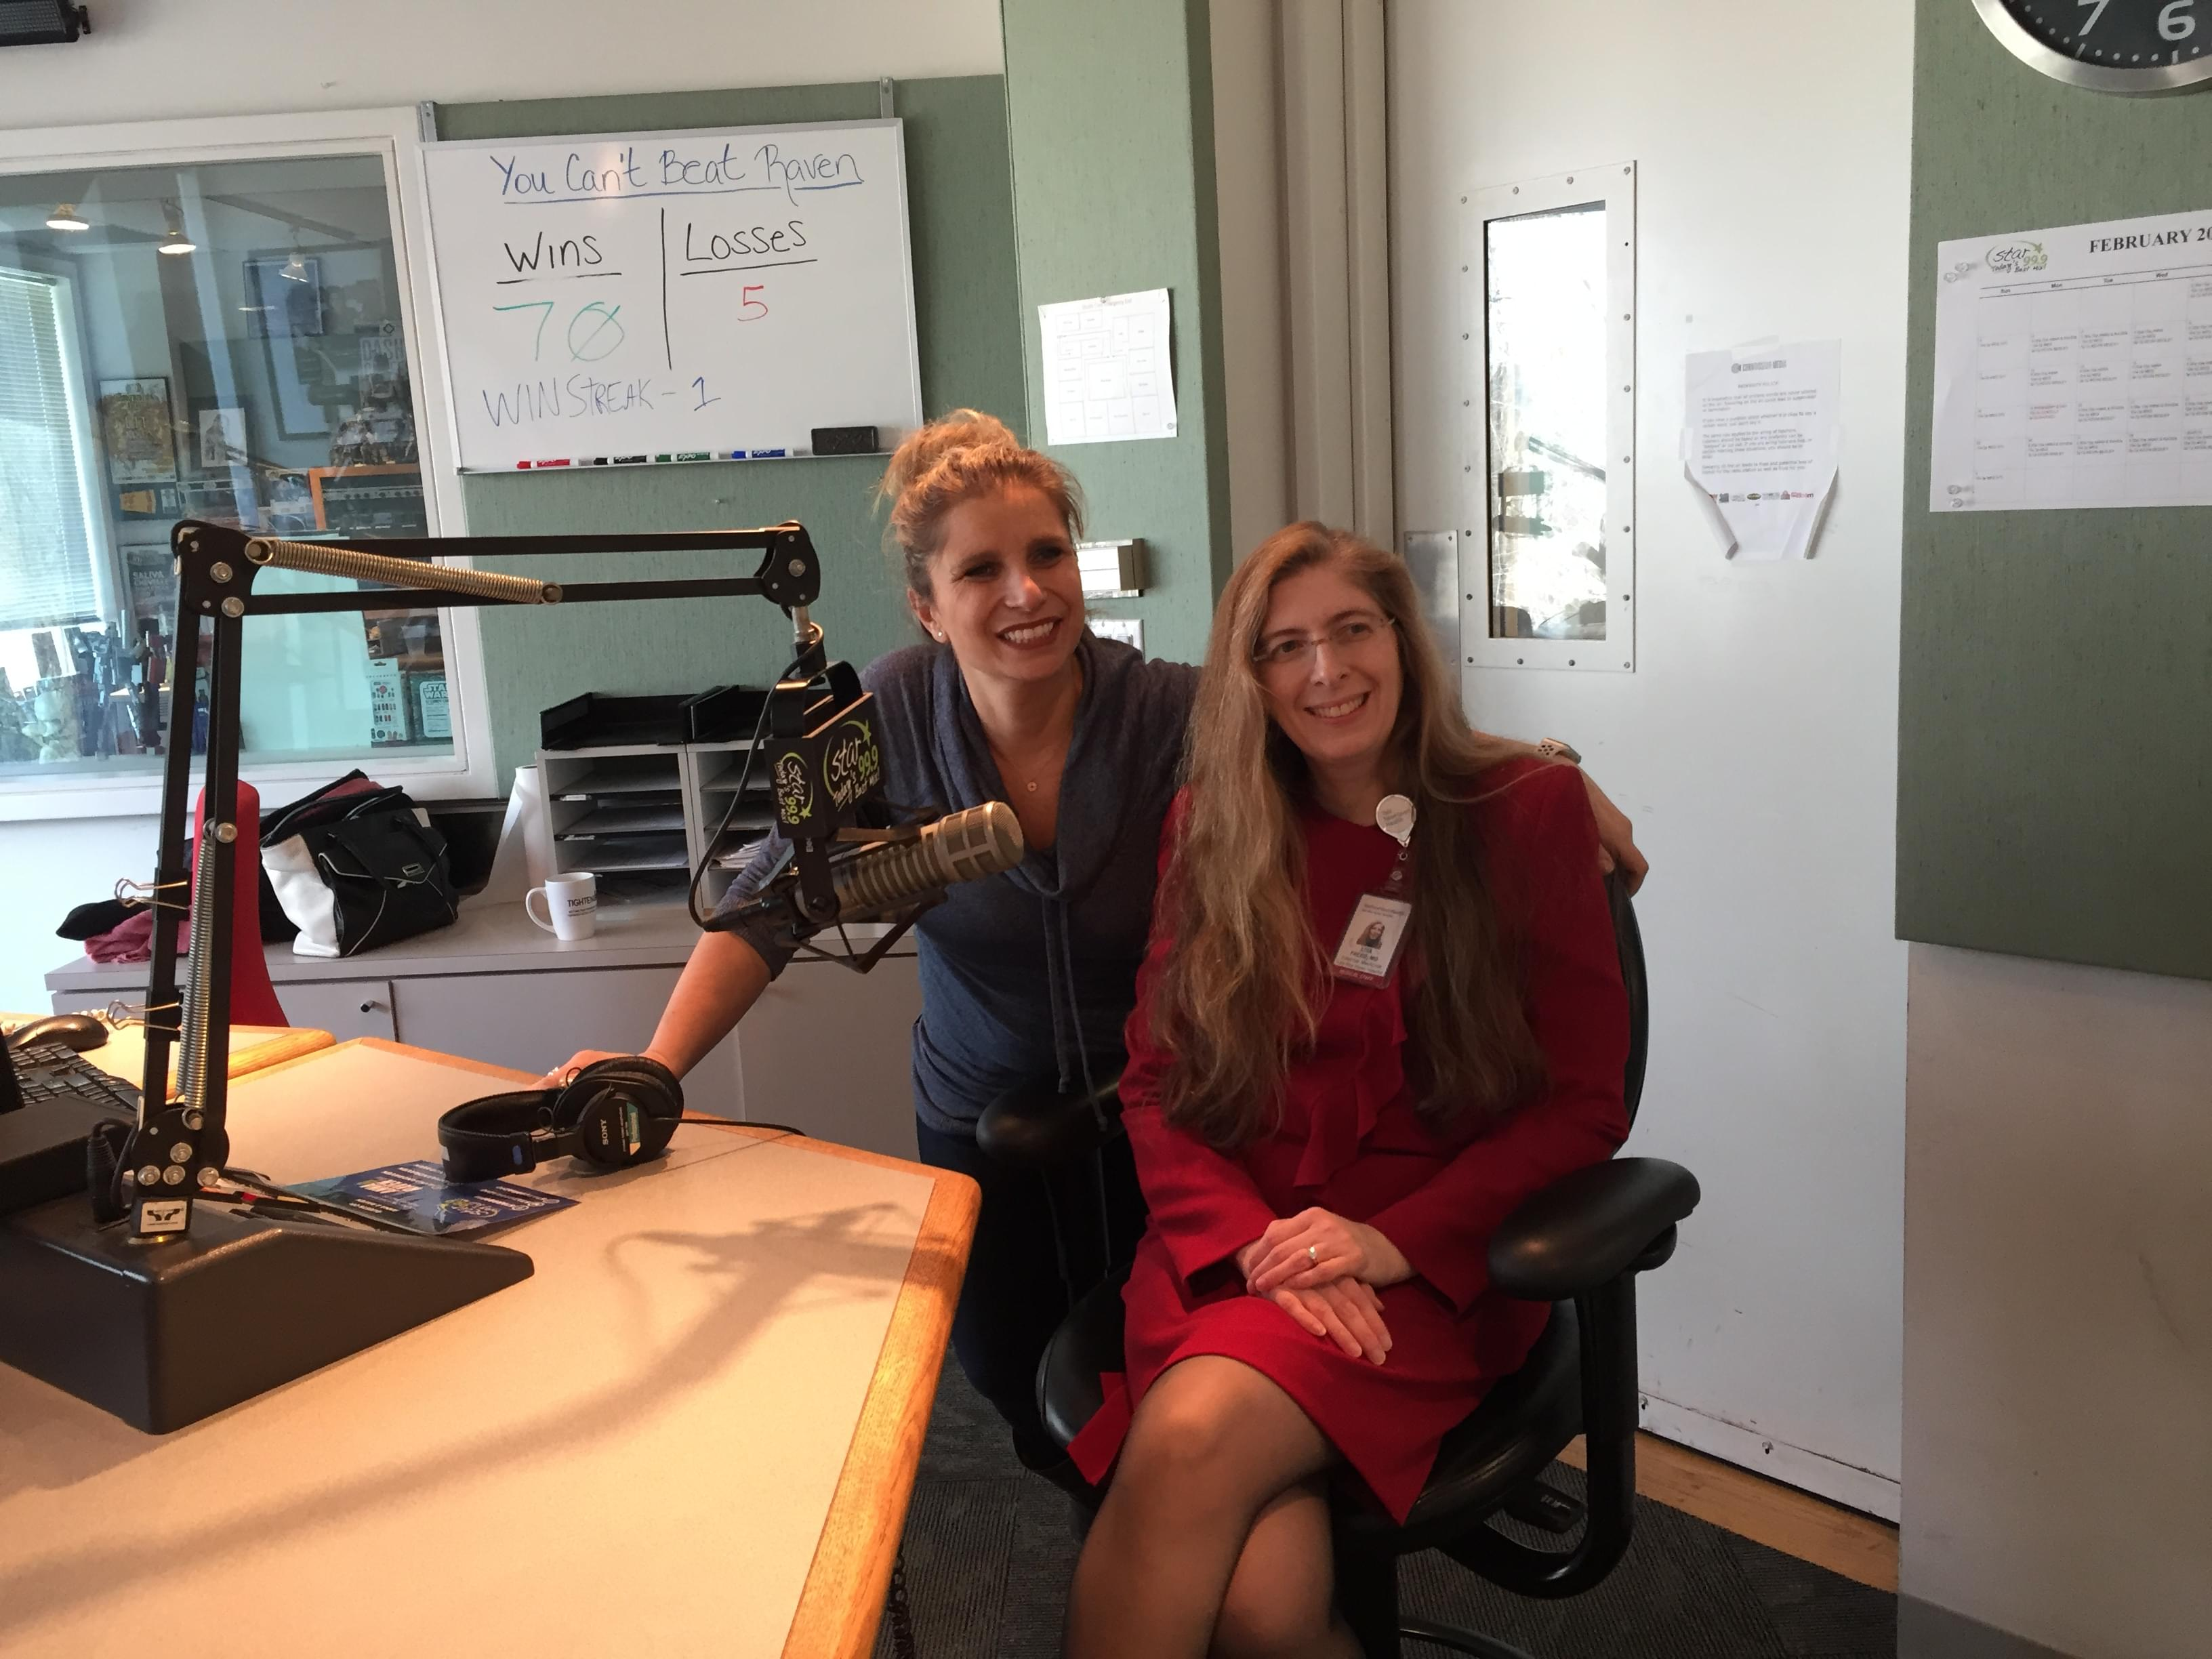 60 Seconds Behind the Scenes- Dr Lisa Freed talks women's health!